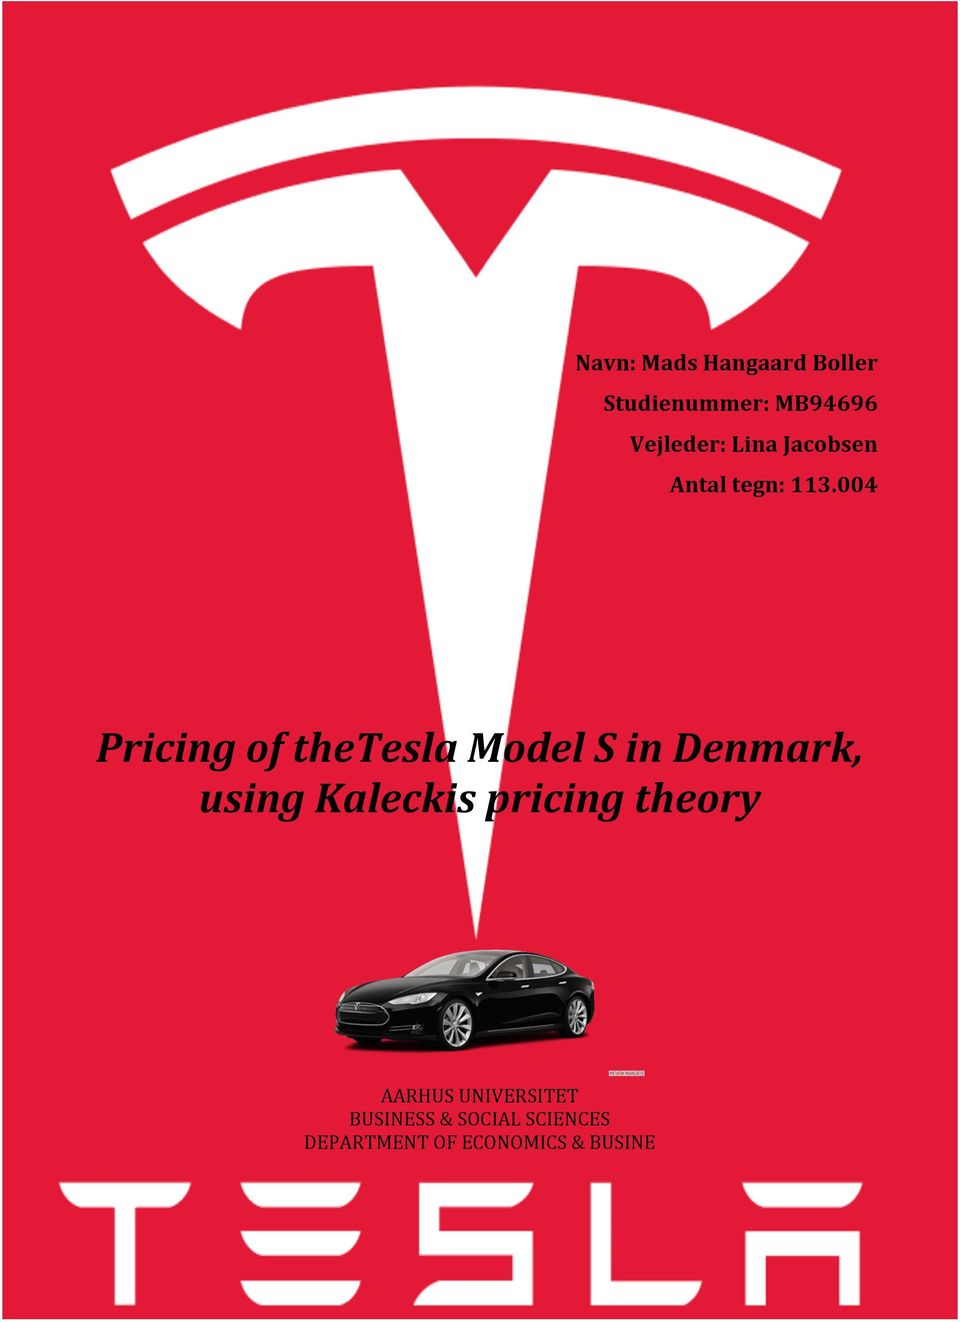 004 Pricing of thetesla Model S in Denmark, using Kaleckis